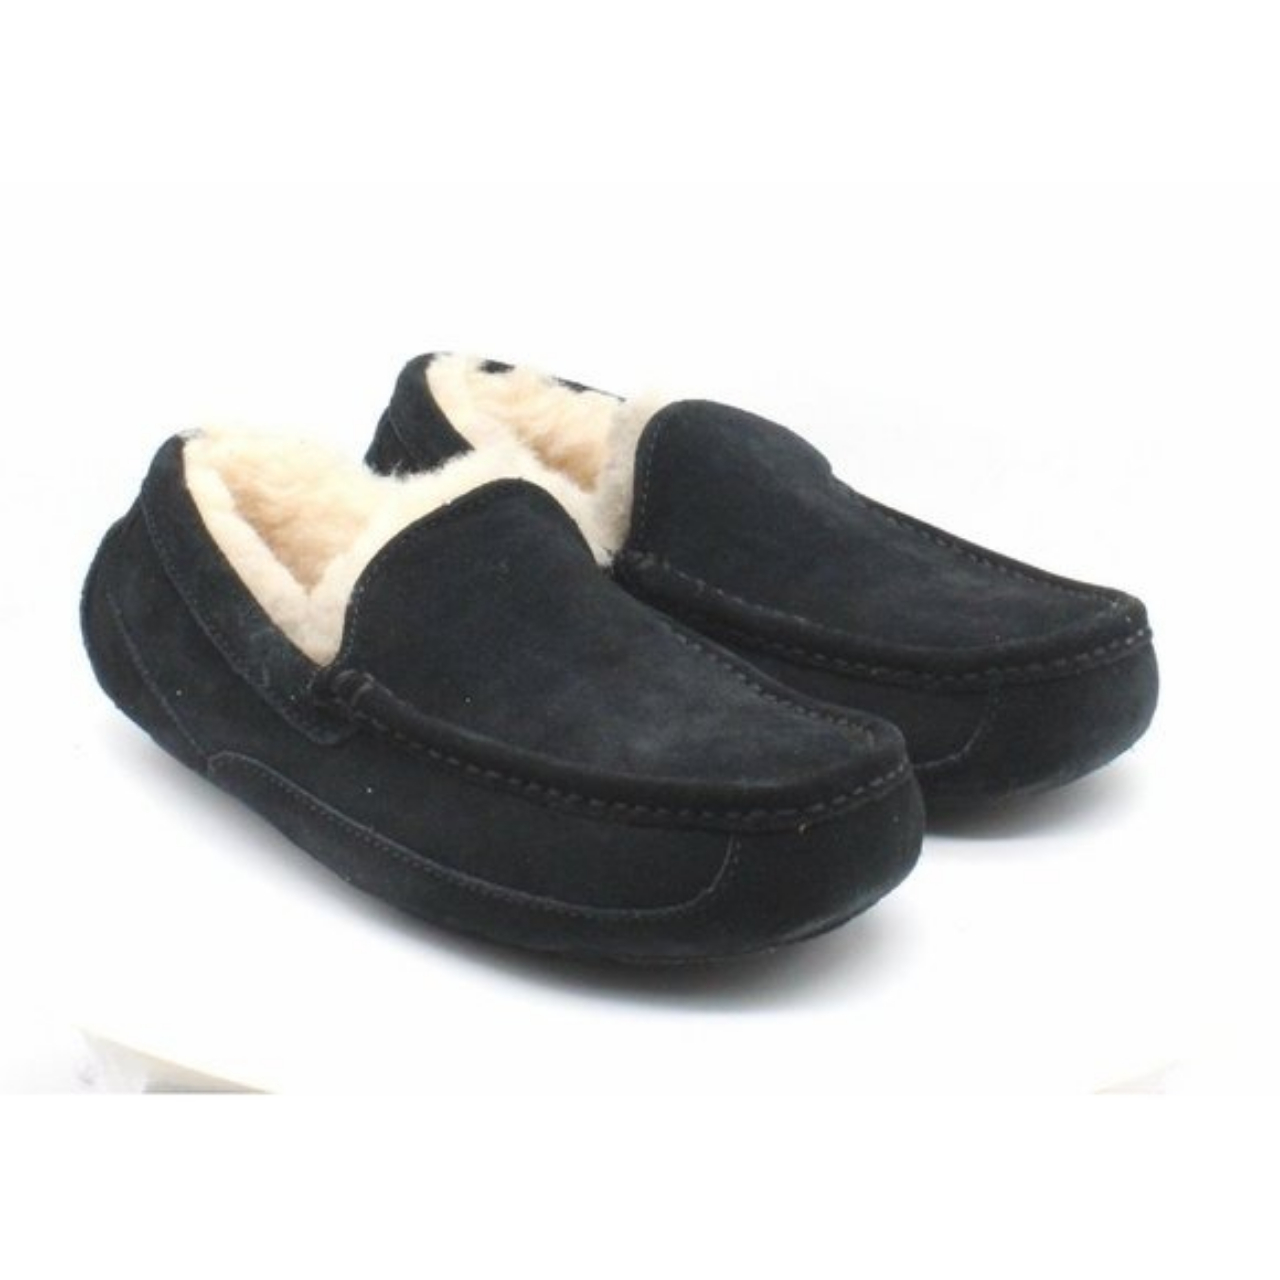 Product Image 1 - Ugg Men's Ascot Moccasin Slippers